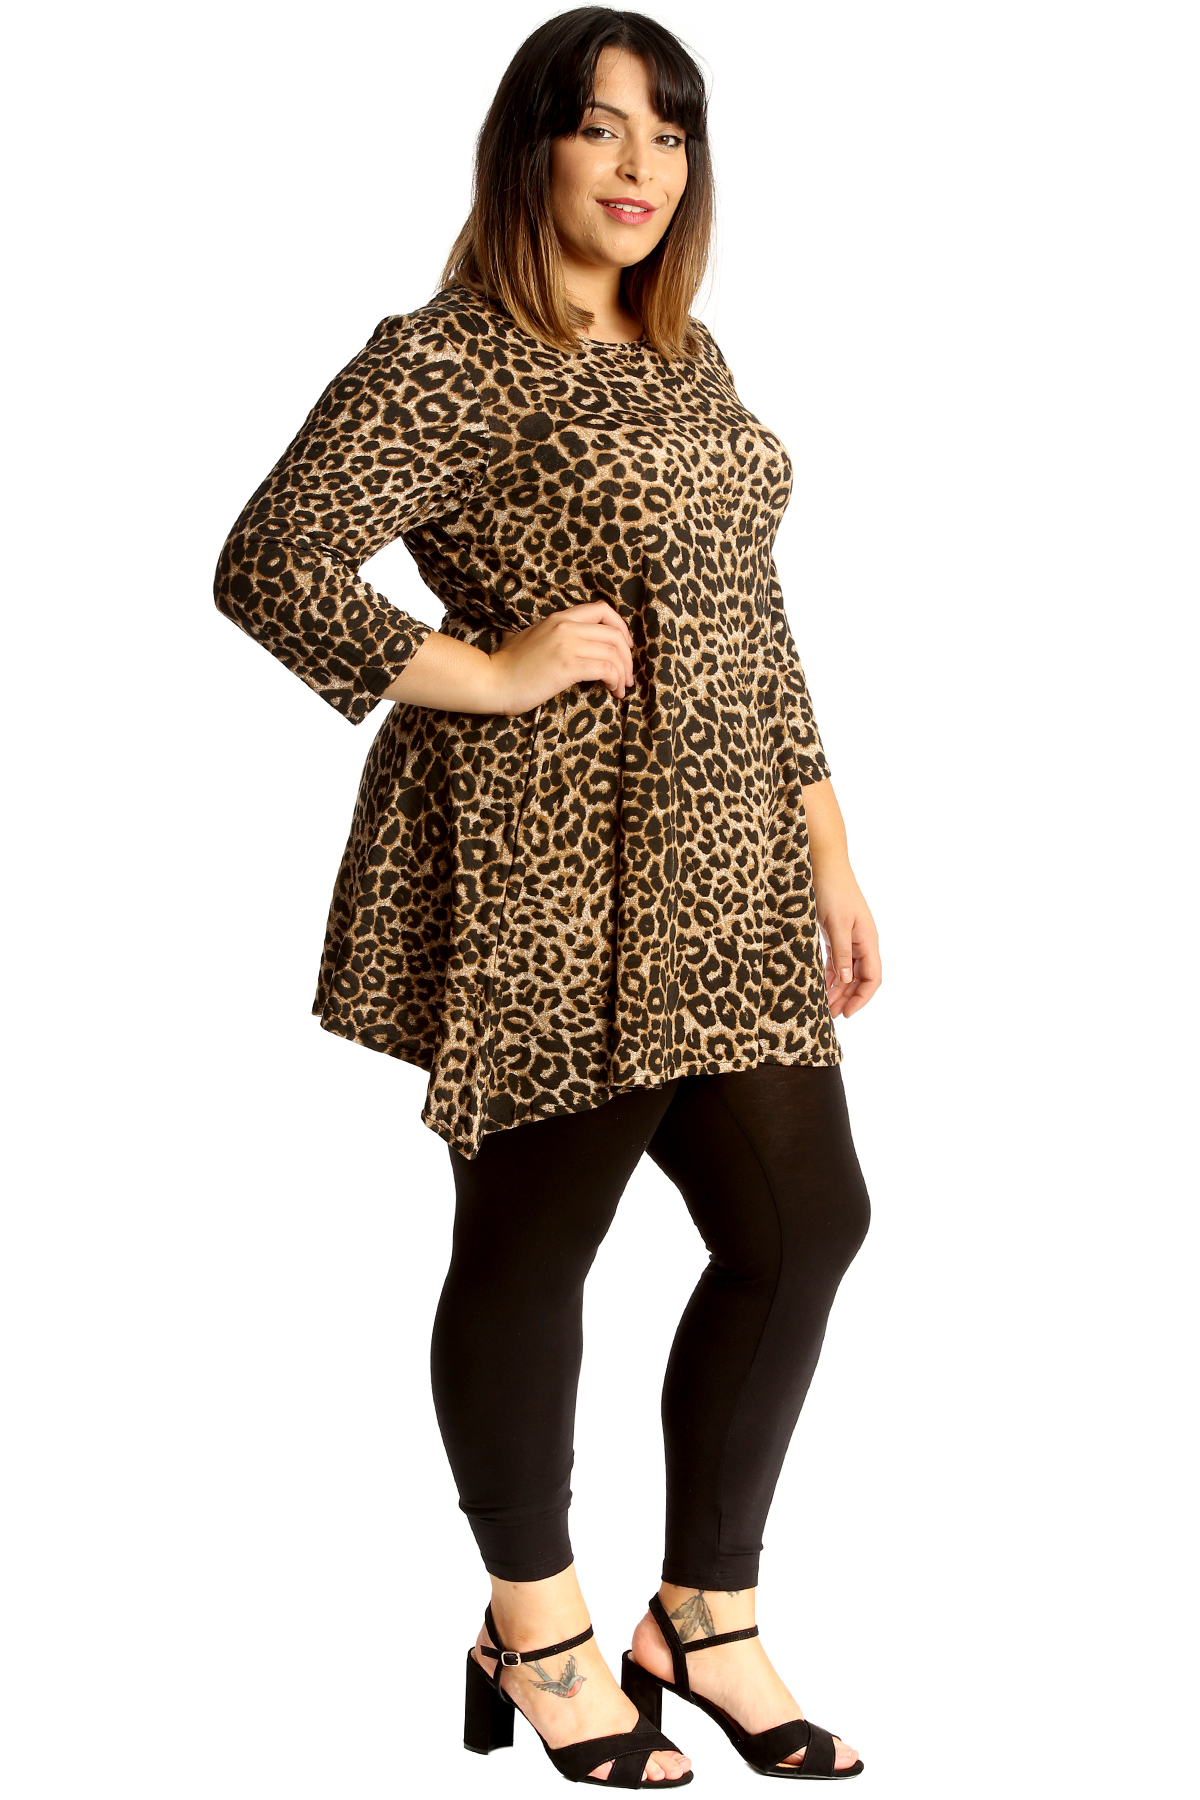 New Womens Plus Size Top Ladies Animal Leopard Print Tunic Swing Skater Style